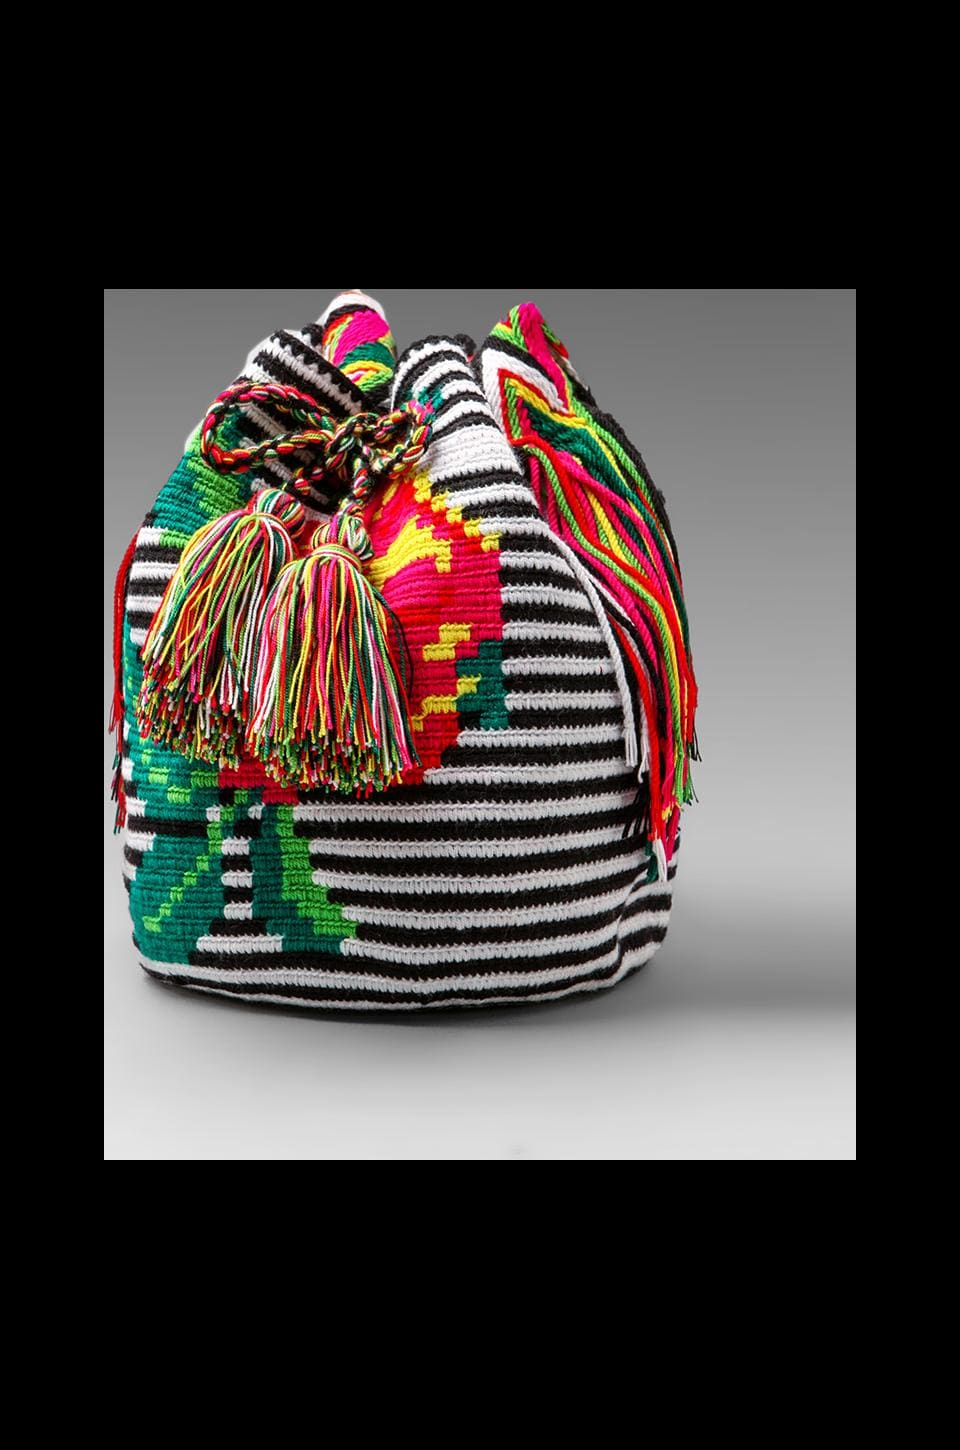 STELA 9 Pachamama Woven Bucket Bag in Black/White Floral